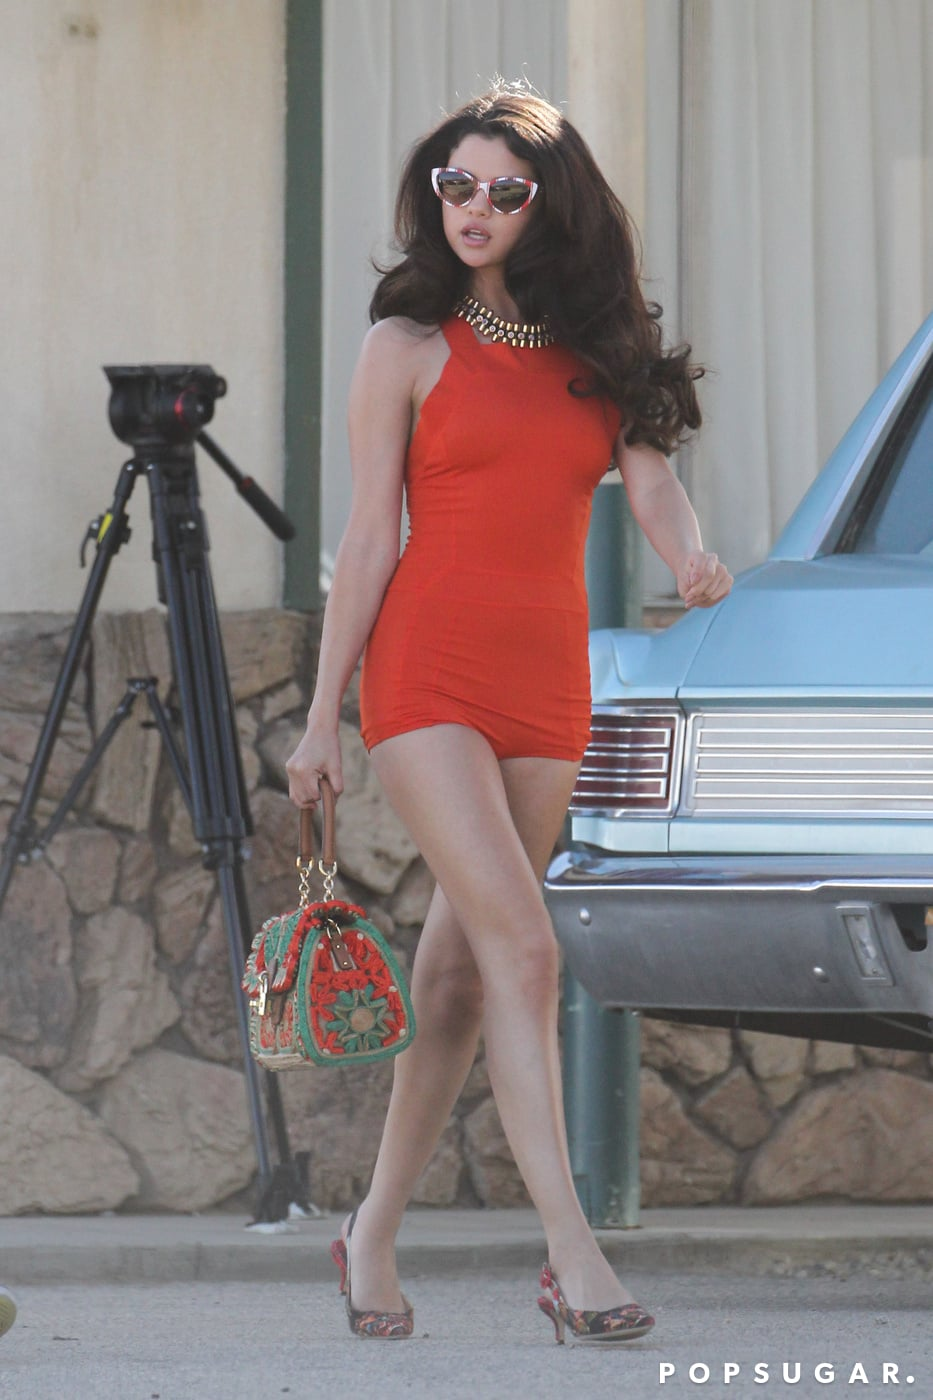 Selena Gomez Flaunted Her Legs In A One Piece Selena